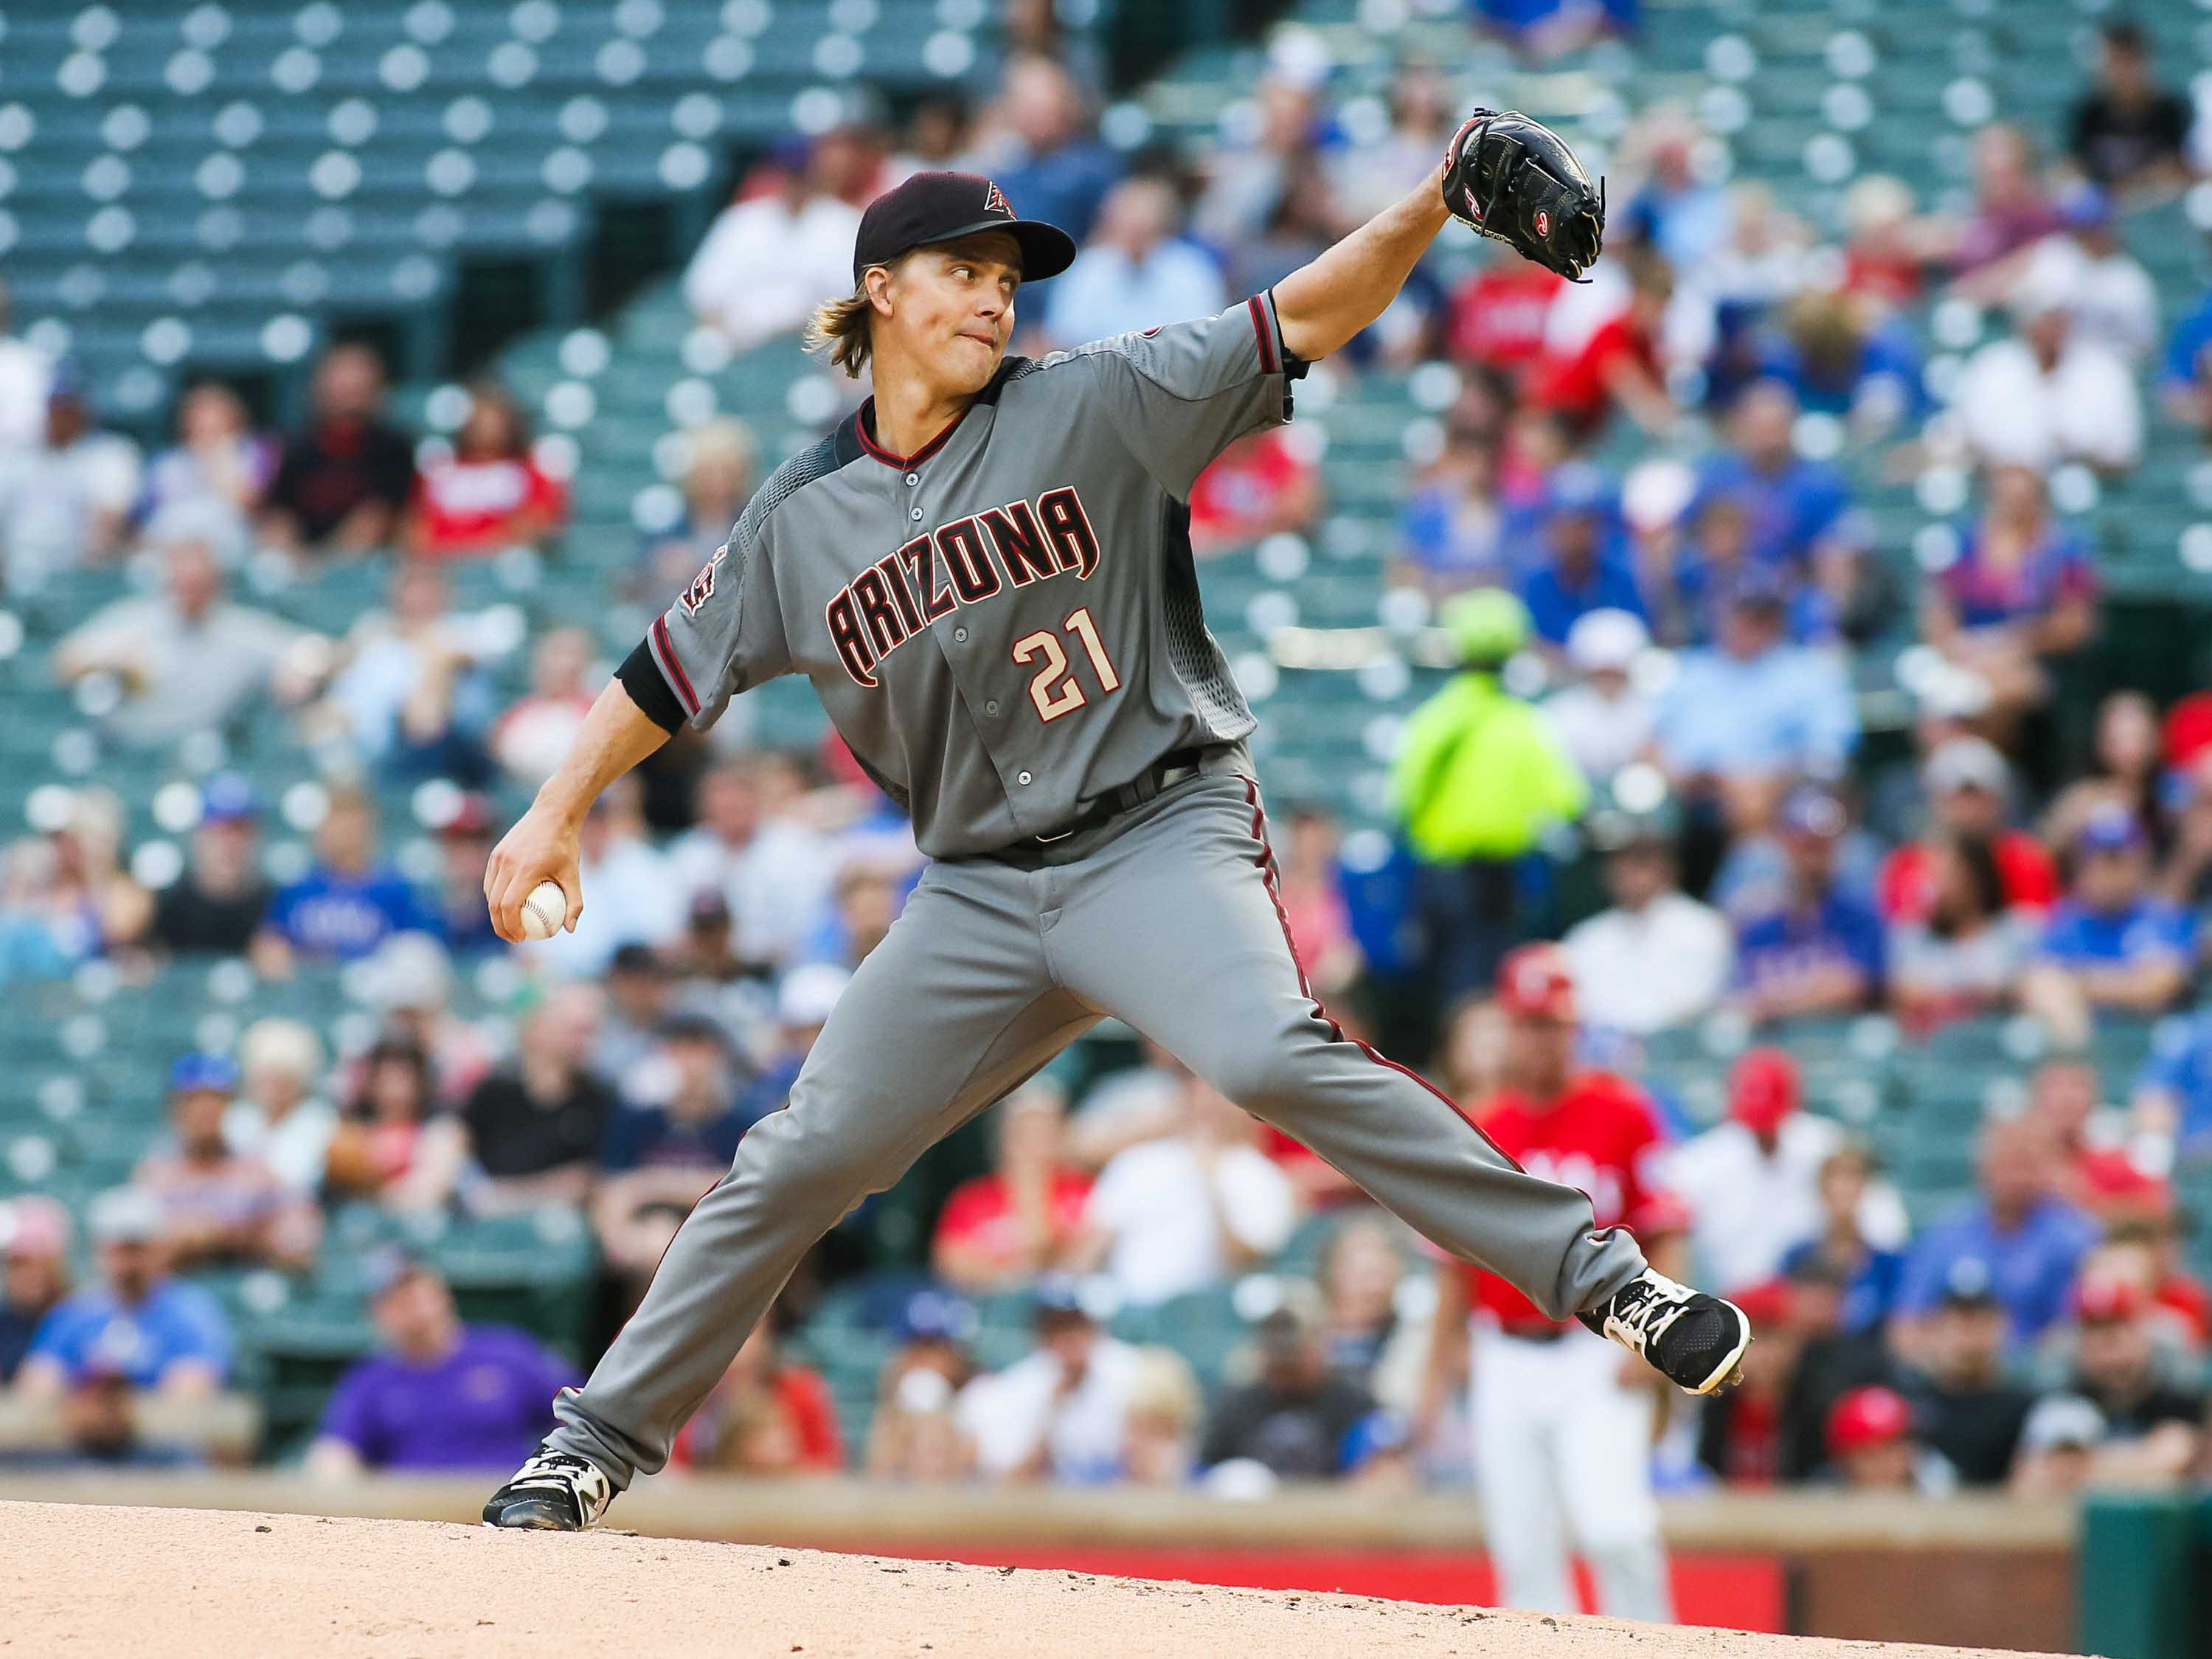 Aug 13, 2018; Arlington, TX, USA; Arizona Diamondbacks starting pitcher Zack Greinke (21) pitches the ball in the first inning against the Texas Rangers at Globe Life Park in Arlington. Mandatory Credit: Ray Carlin-USA TODAY Sports